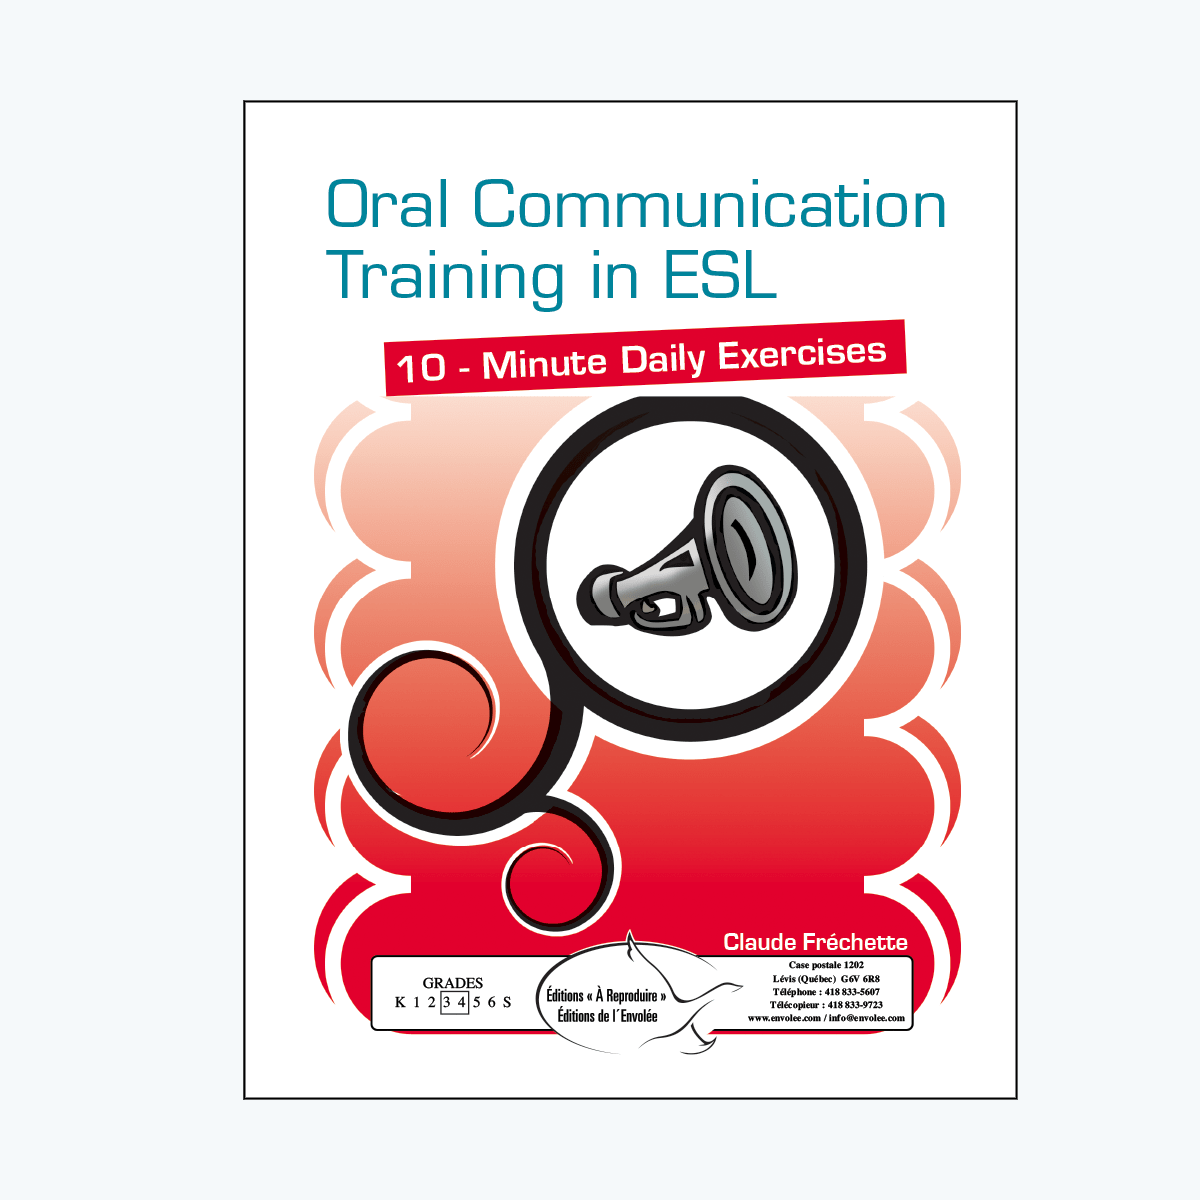 Oral Communication Training in ESL